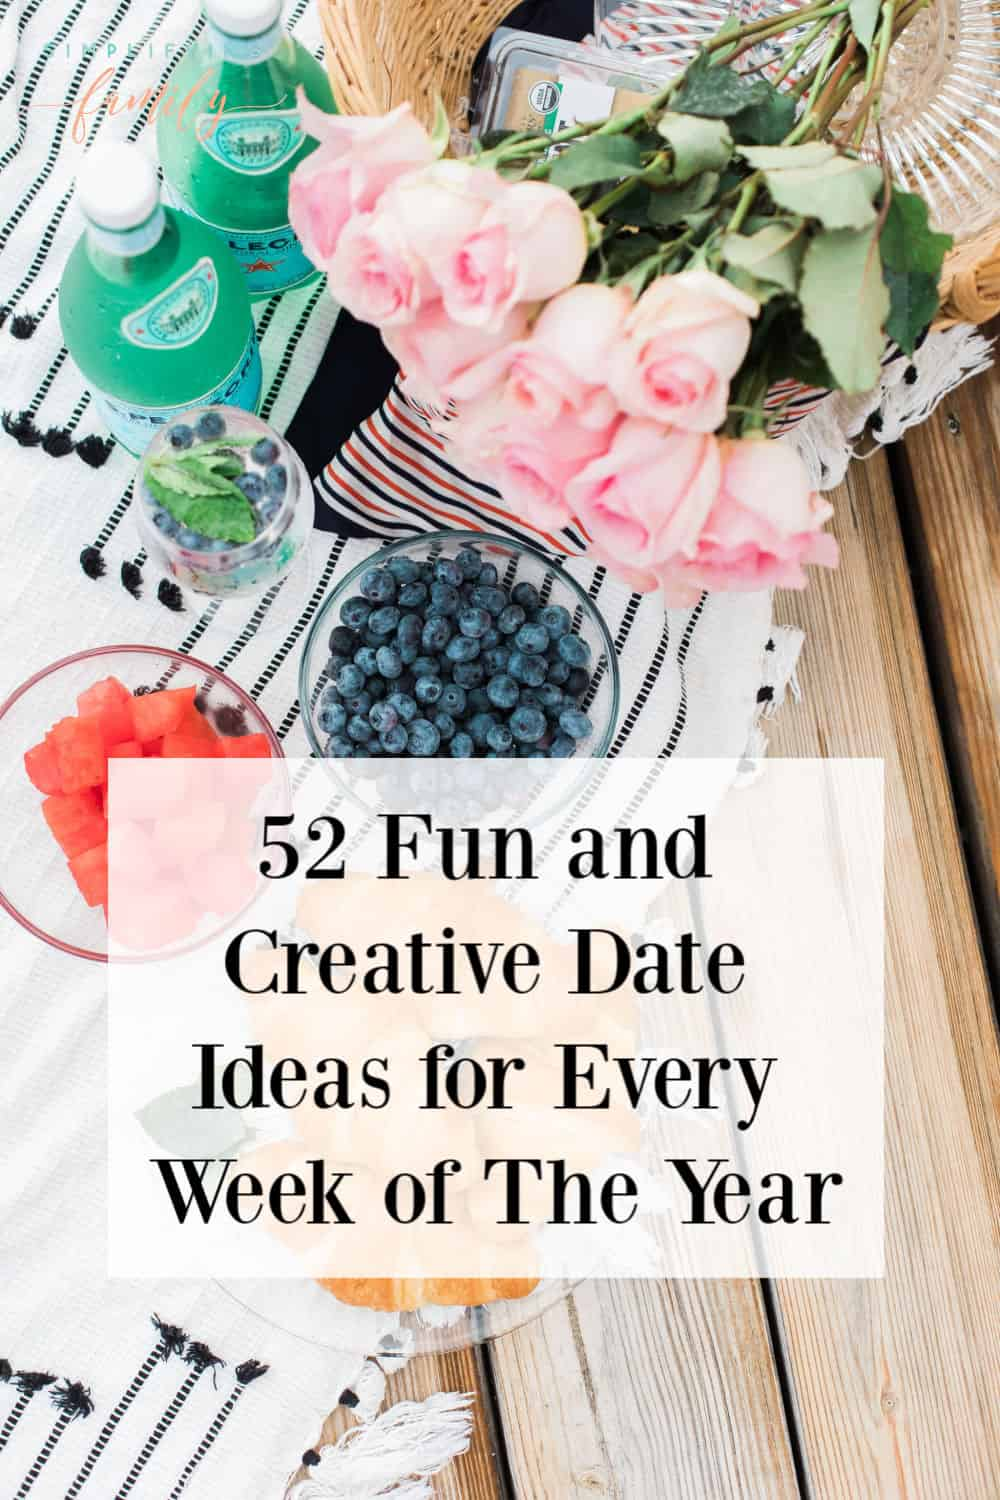 Instead of settling for dinner and a movie, add a little spark to your date night.  Check out these 52 Fun and Creative Date Ideas for Every Week of The Year! #52datenightideas #datenightideas  #Cheapdatenightideas #Datenightideasformarriedcouples #Fundateideasforcouples #romanticdateideas via @simplifyingfamily